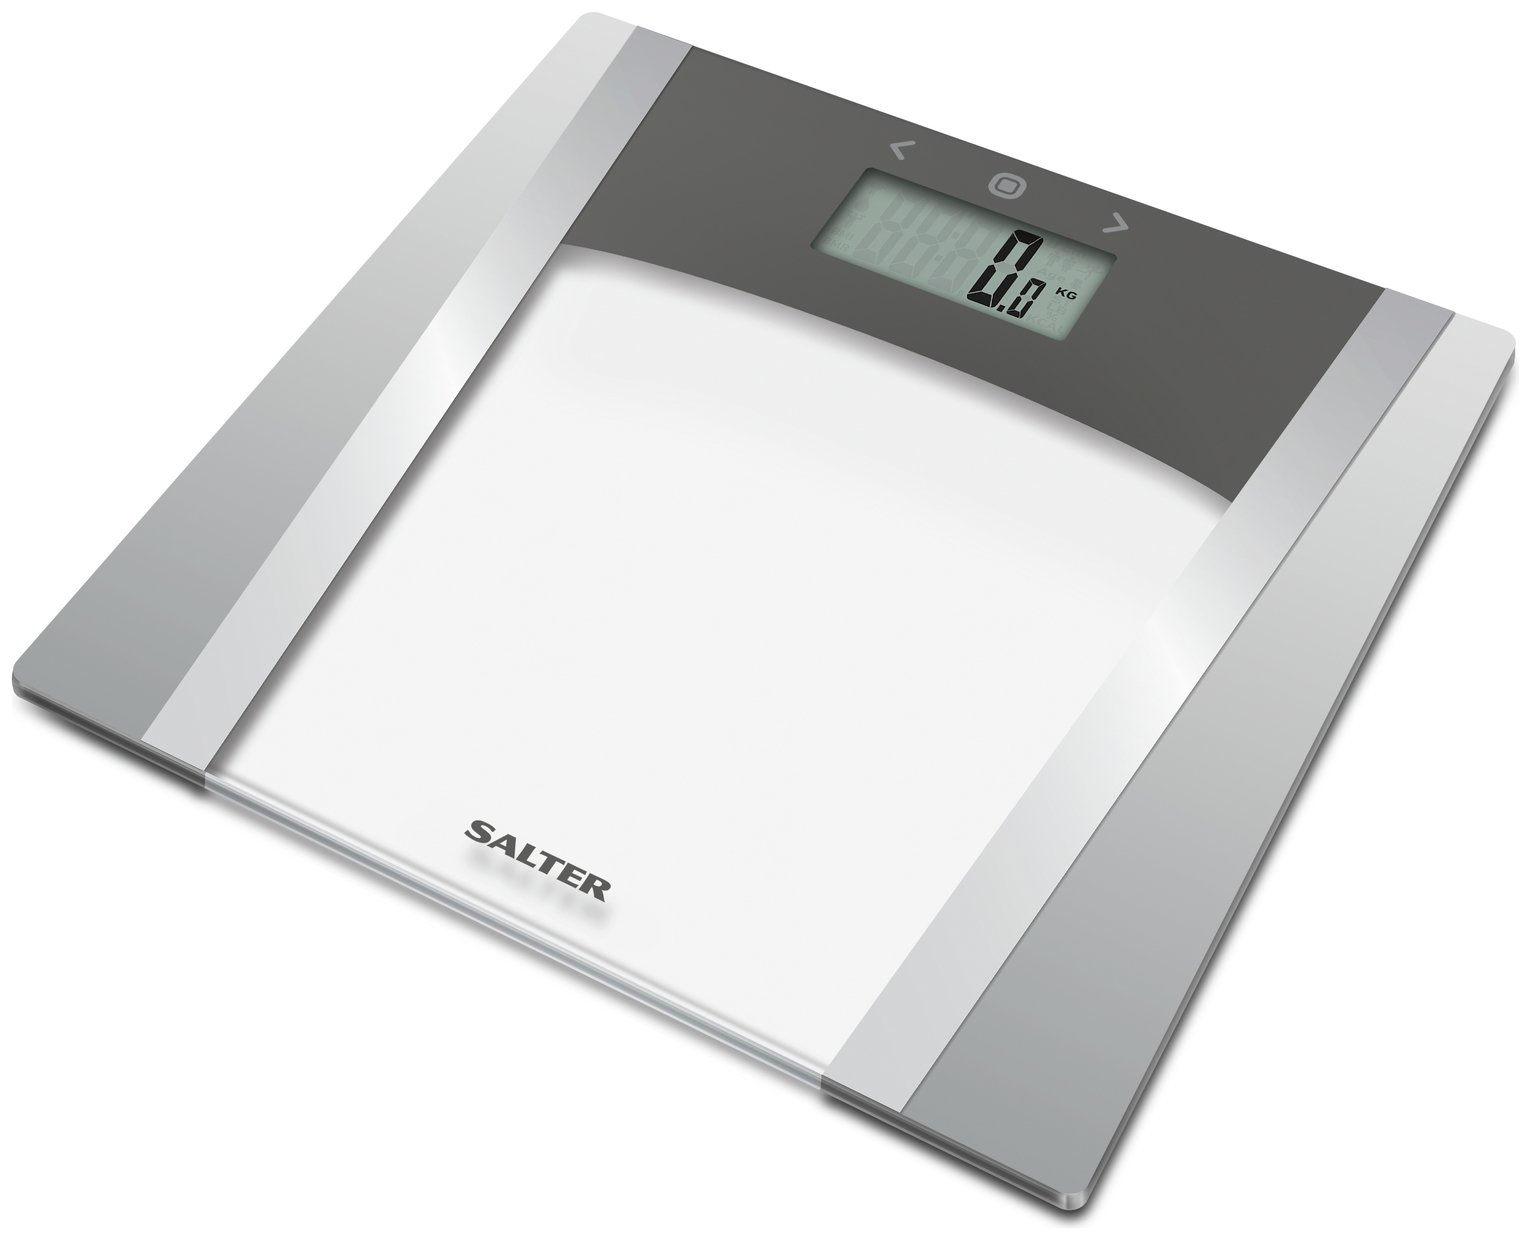 Salter Large Display Body Analyser Scale - Glass